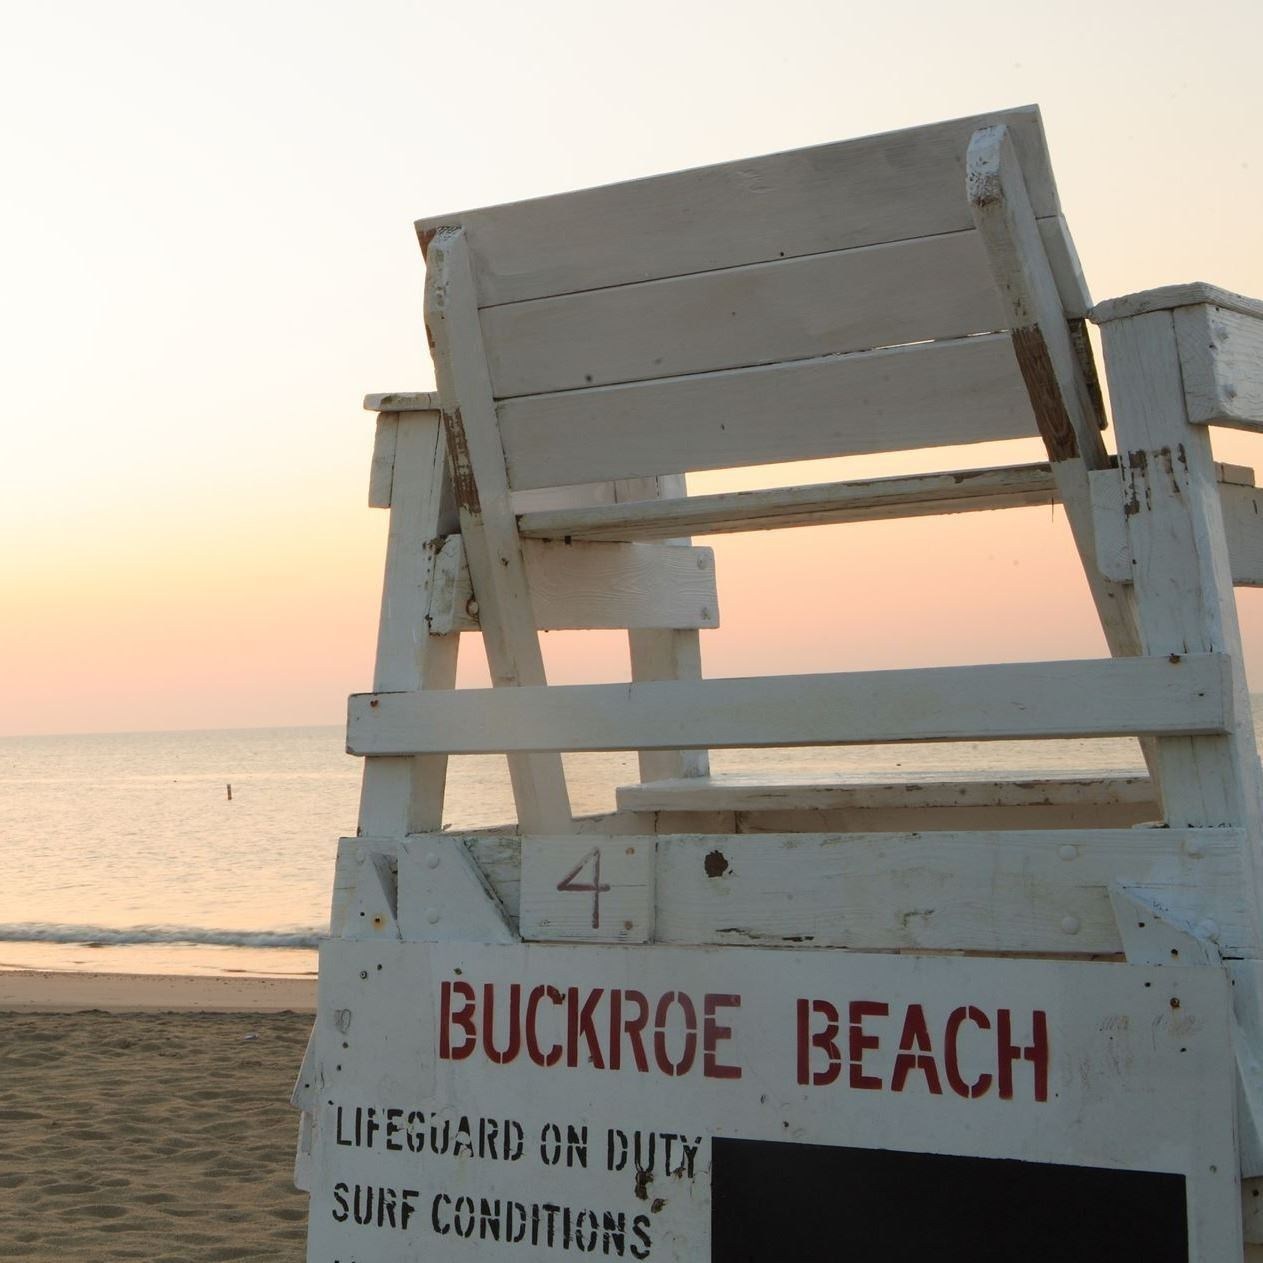 Buckroe Beach - Lifeguard stand